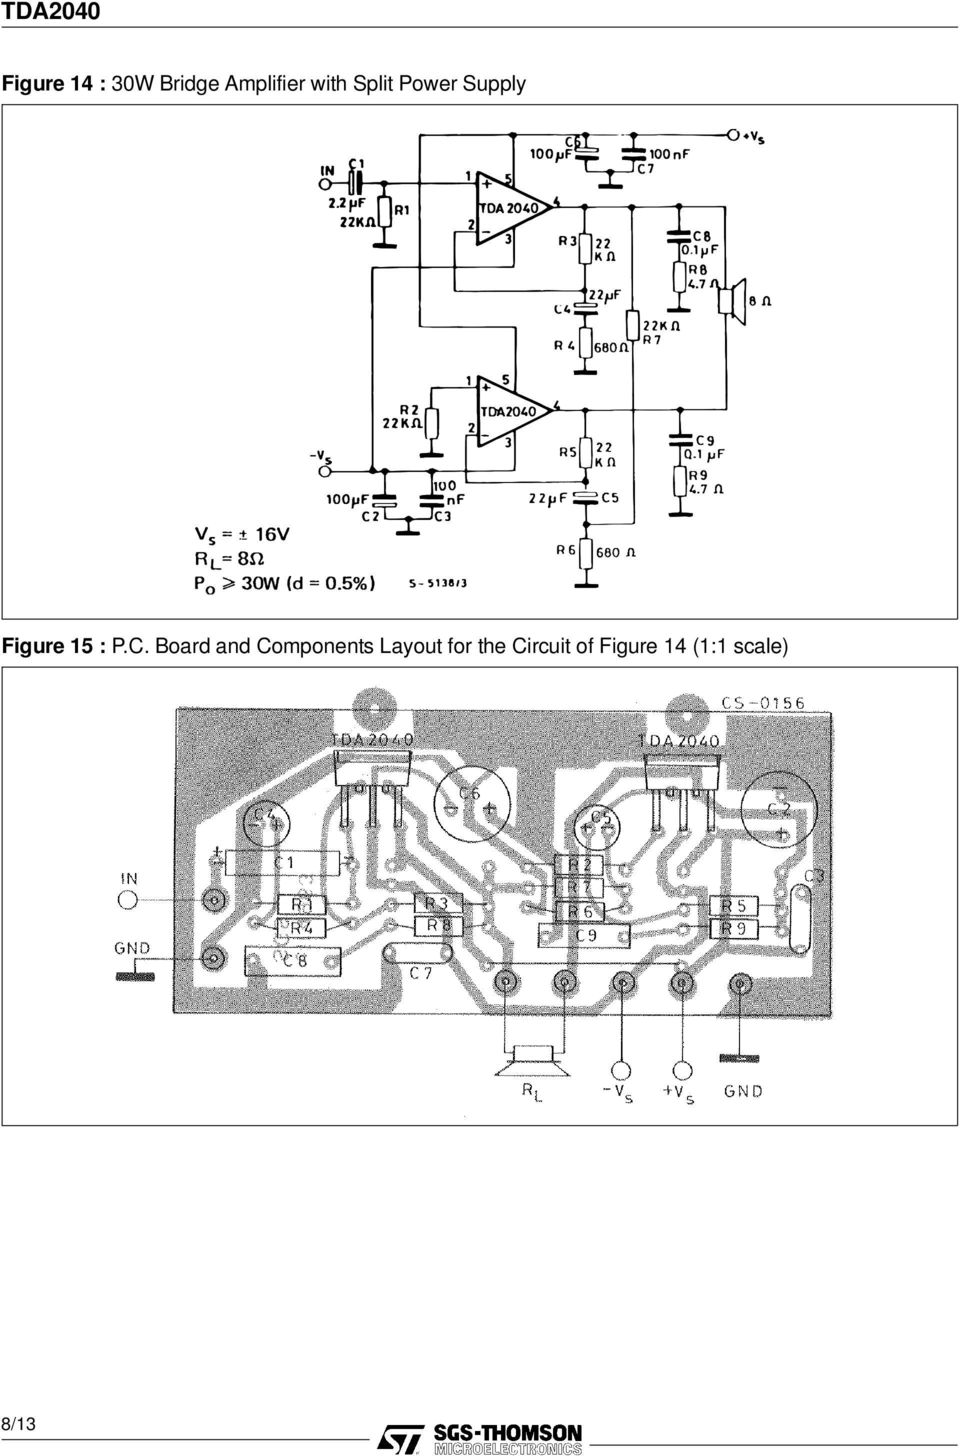 P.C. Board and Components Layout for